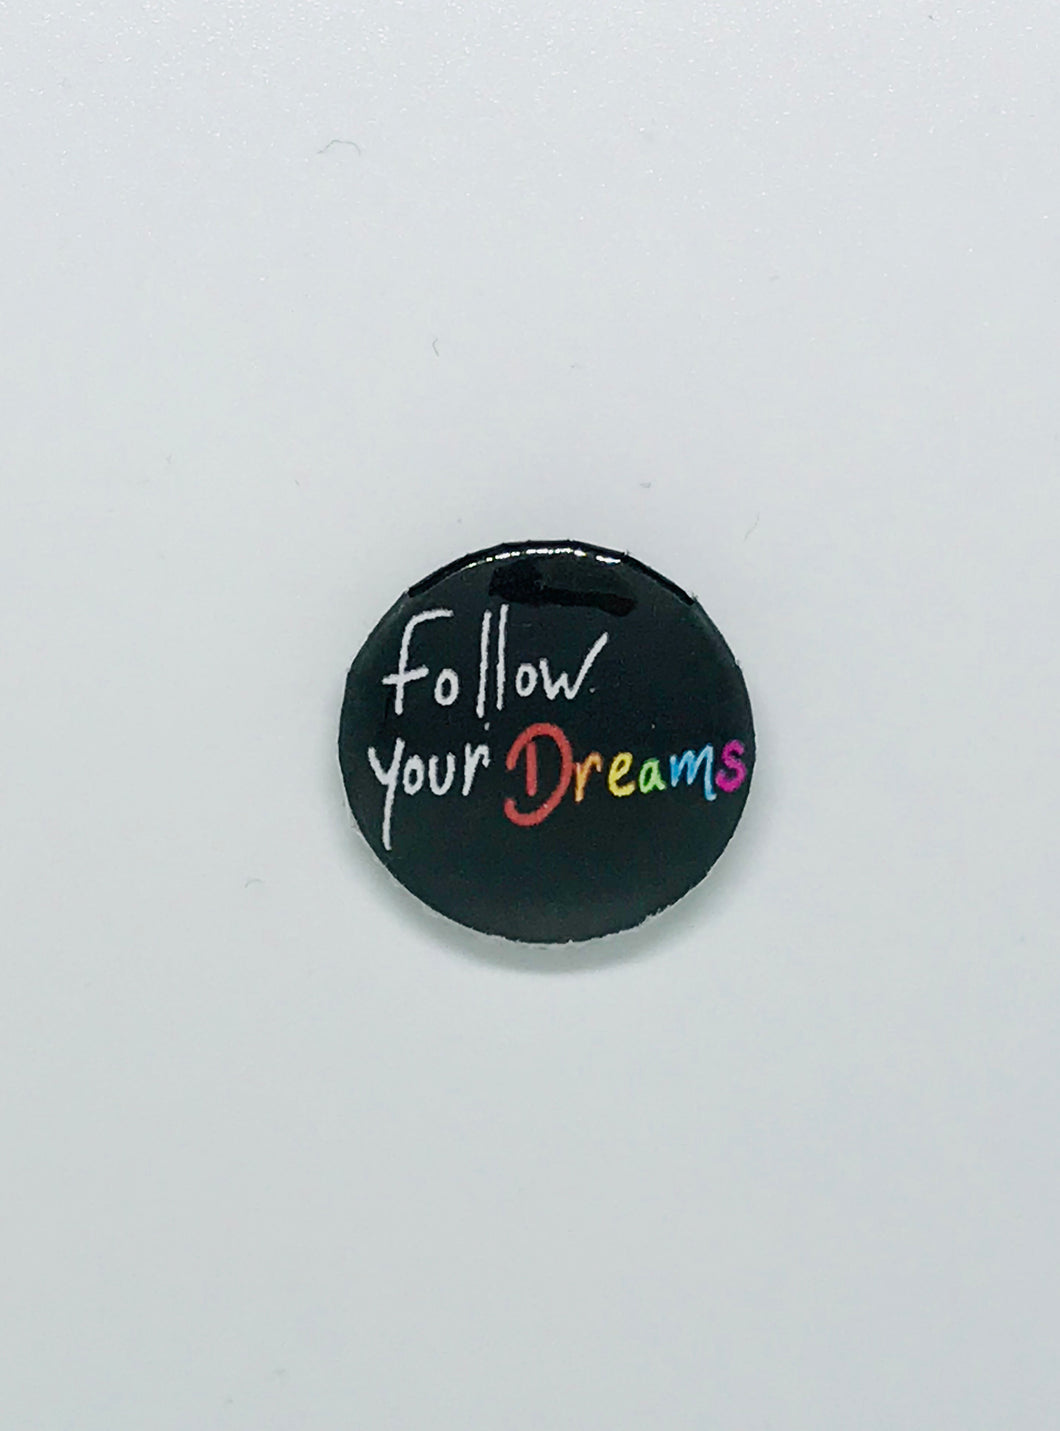 Follow Your Dreams Button